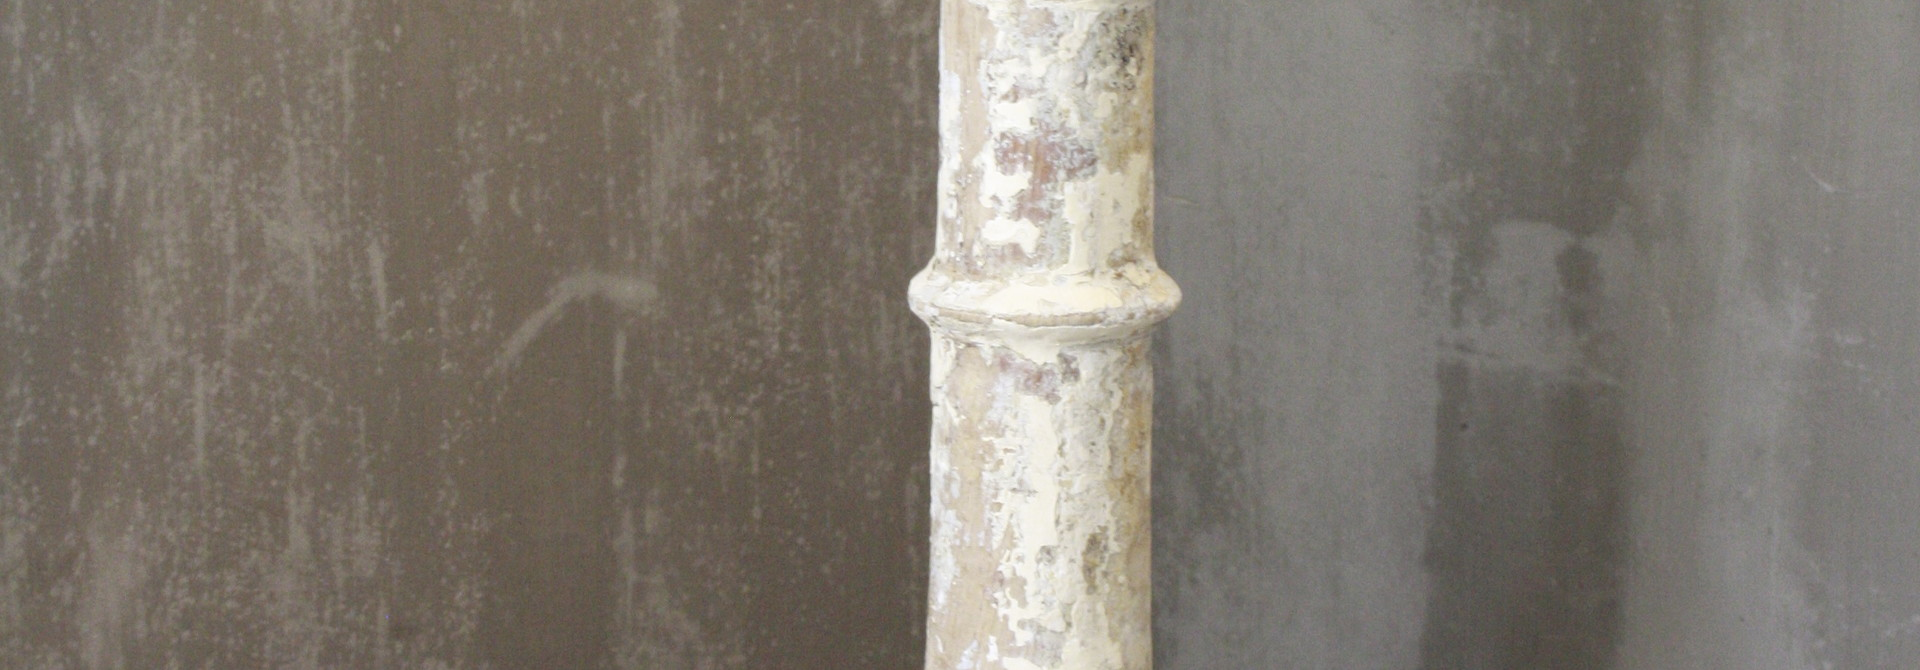 Balusterlamp Oud Hout Wit Tint 66 cm